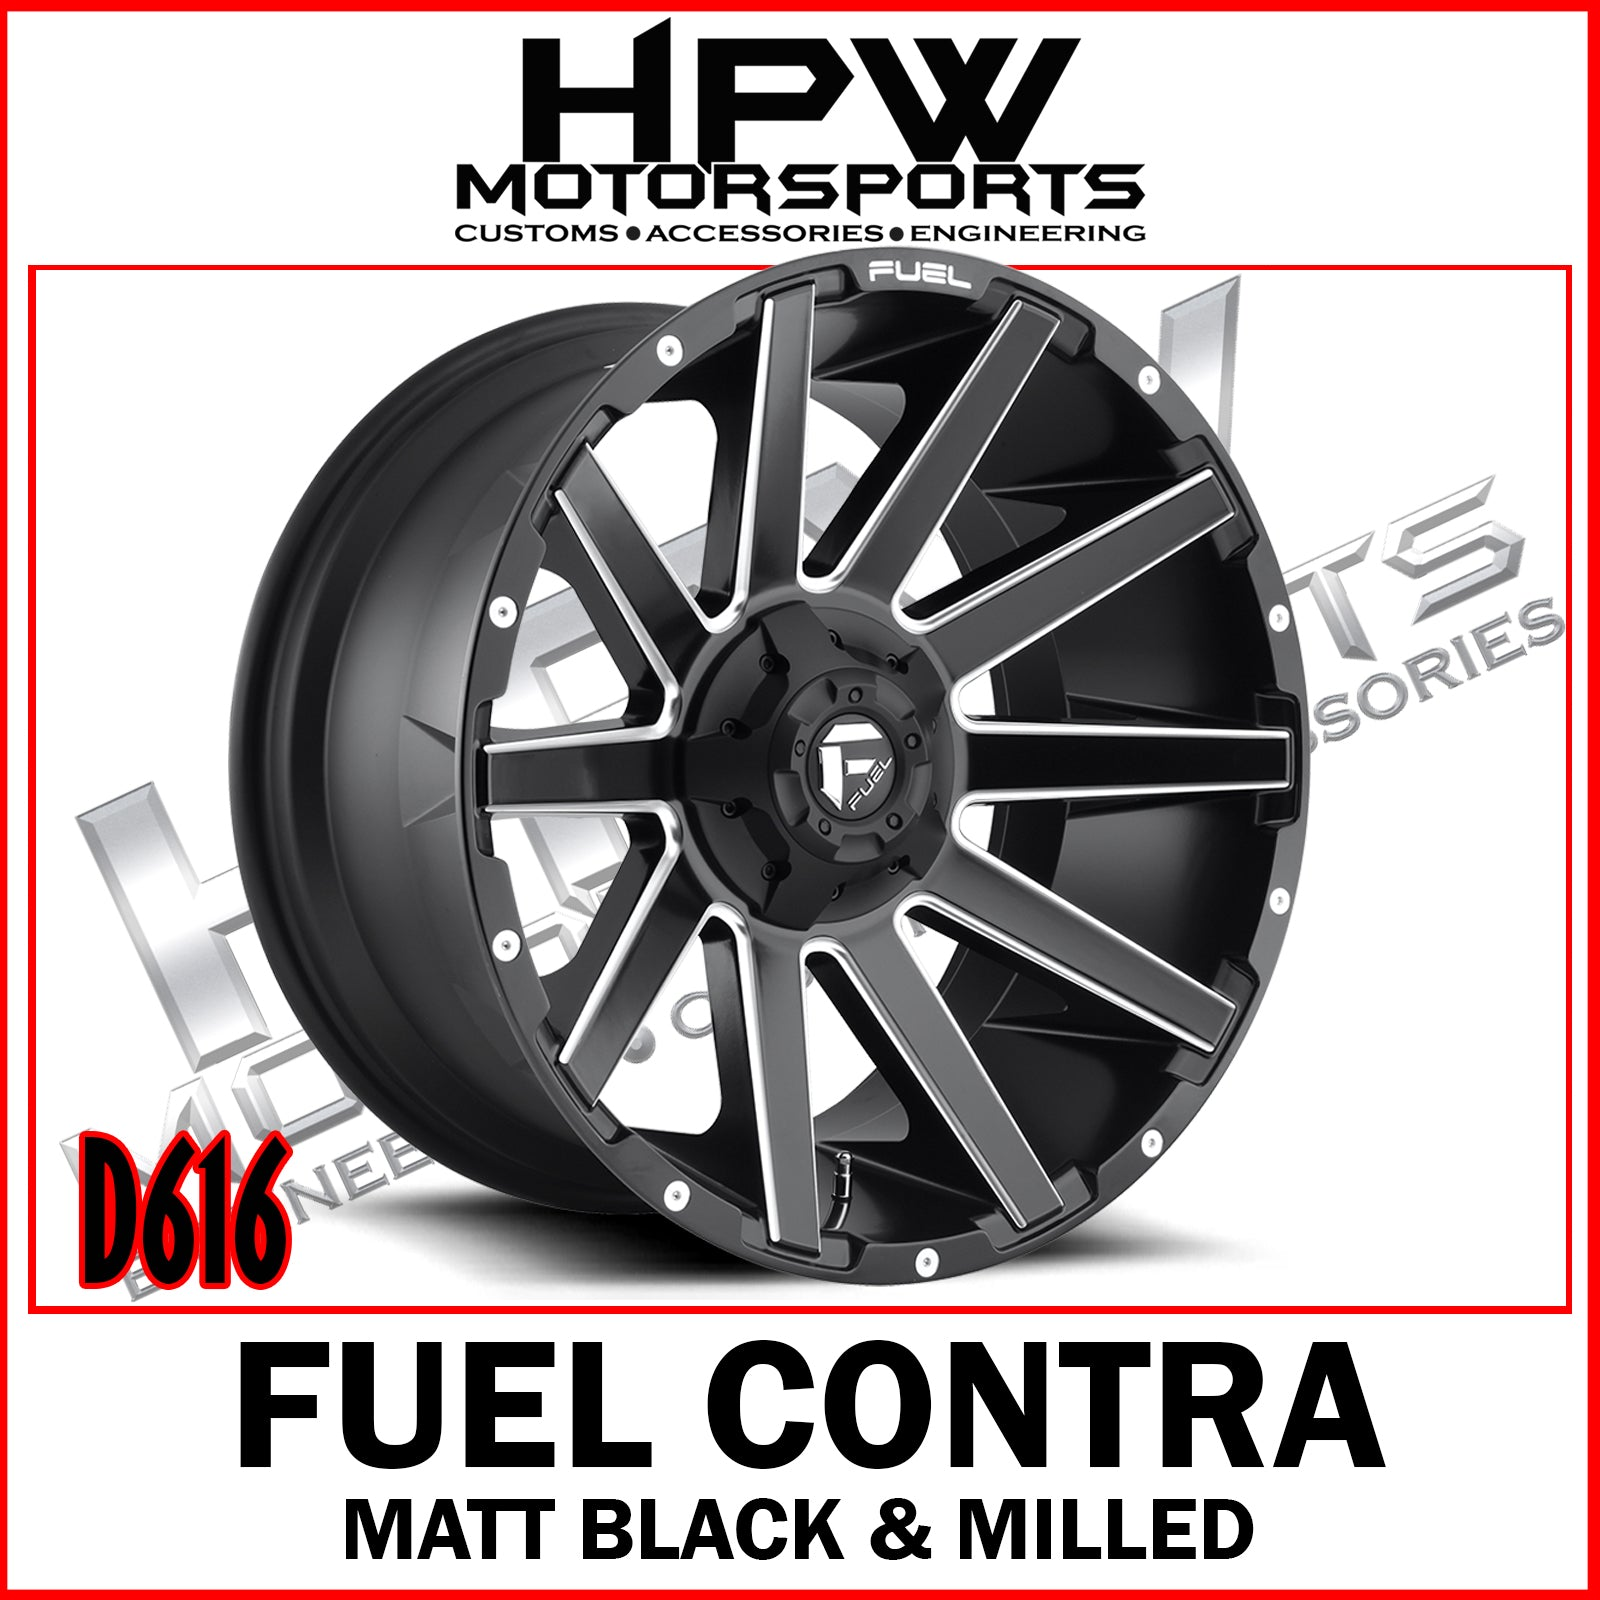 D616 FUEL CONTRA - MATT BLACK & MILLED - Set of 4